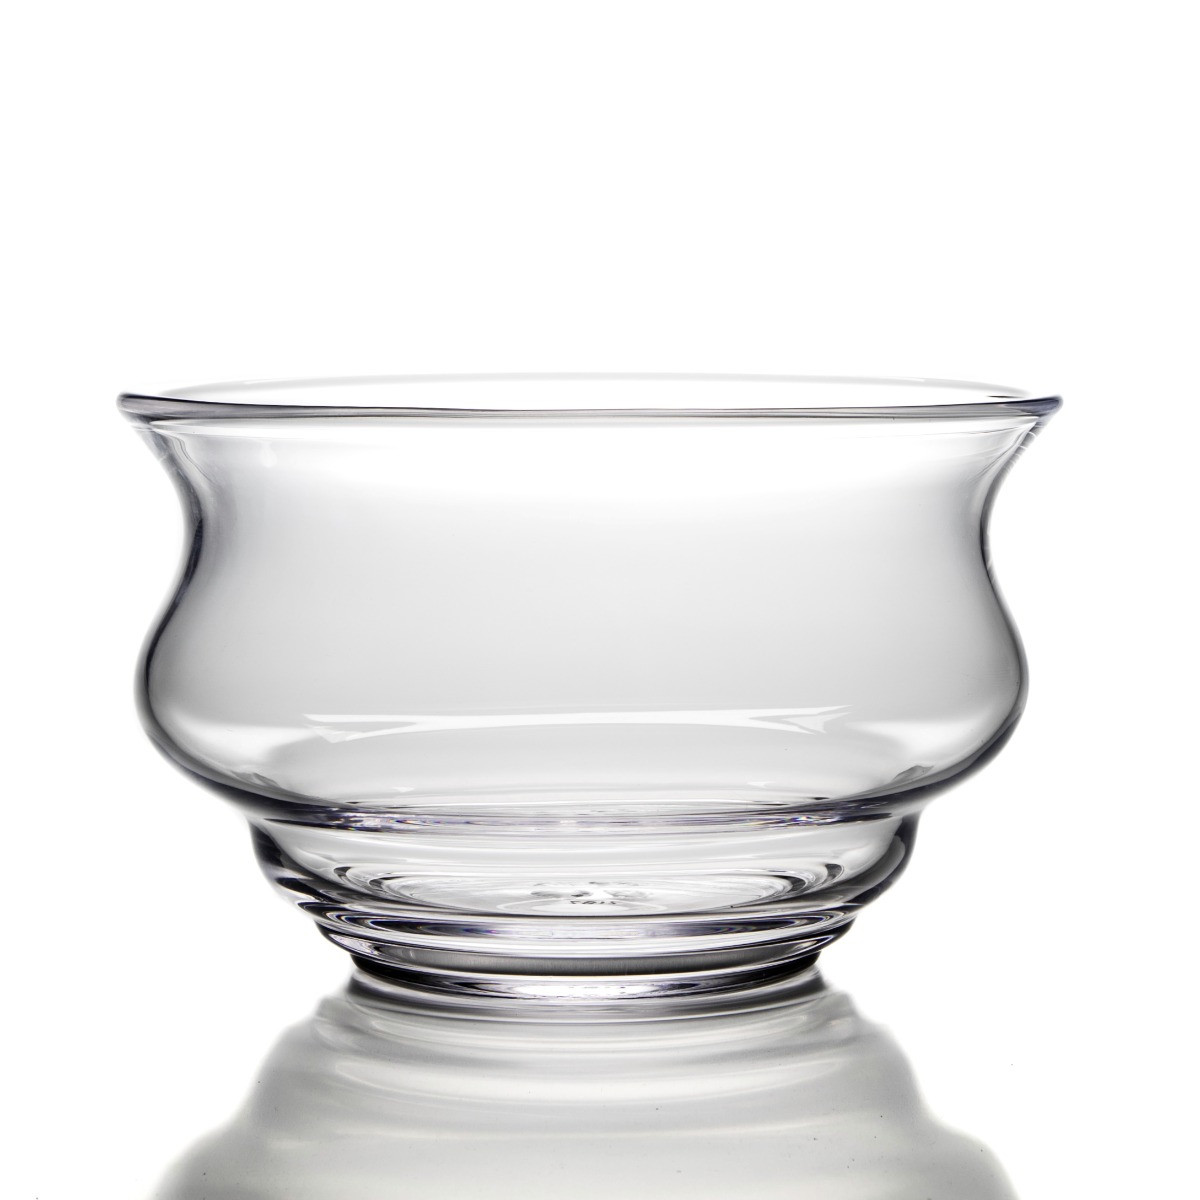 simon pearce vase sale of bloomfield bowl regarding 7879 bloomfield